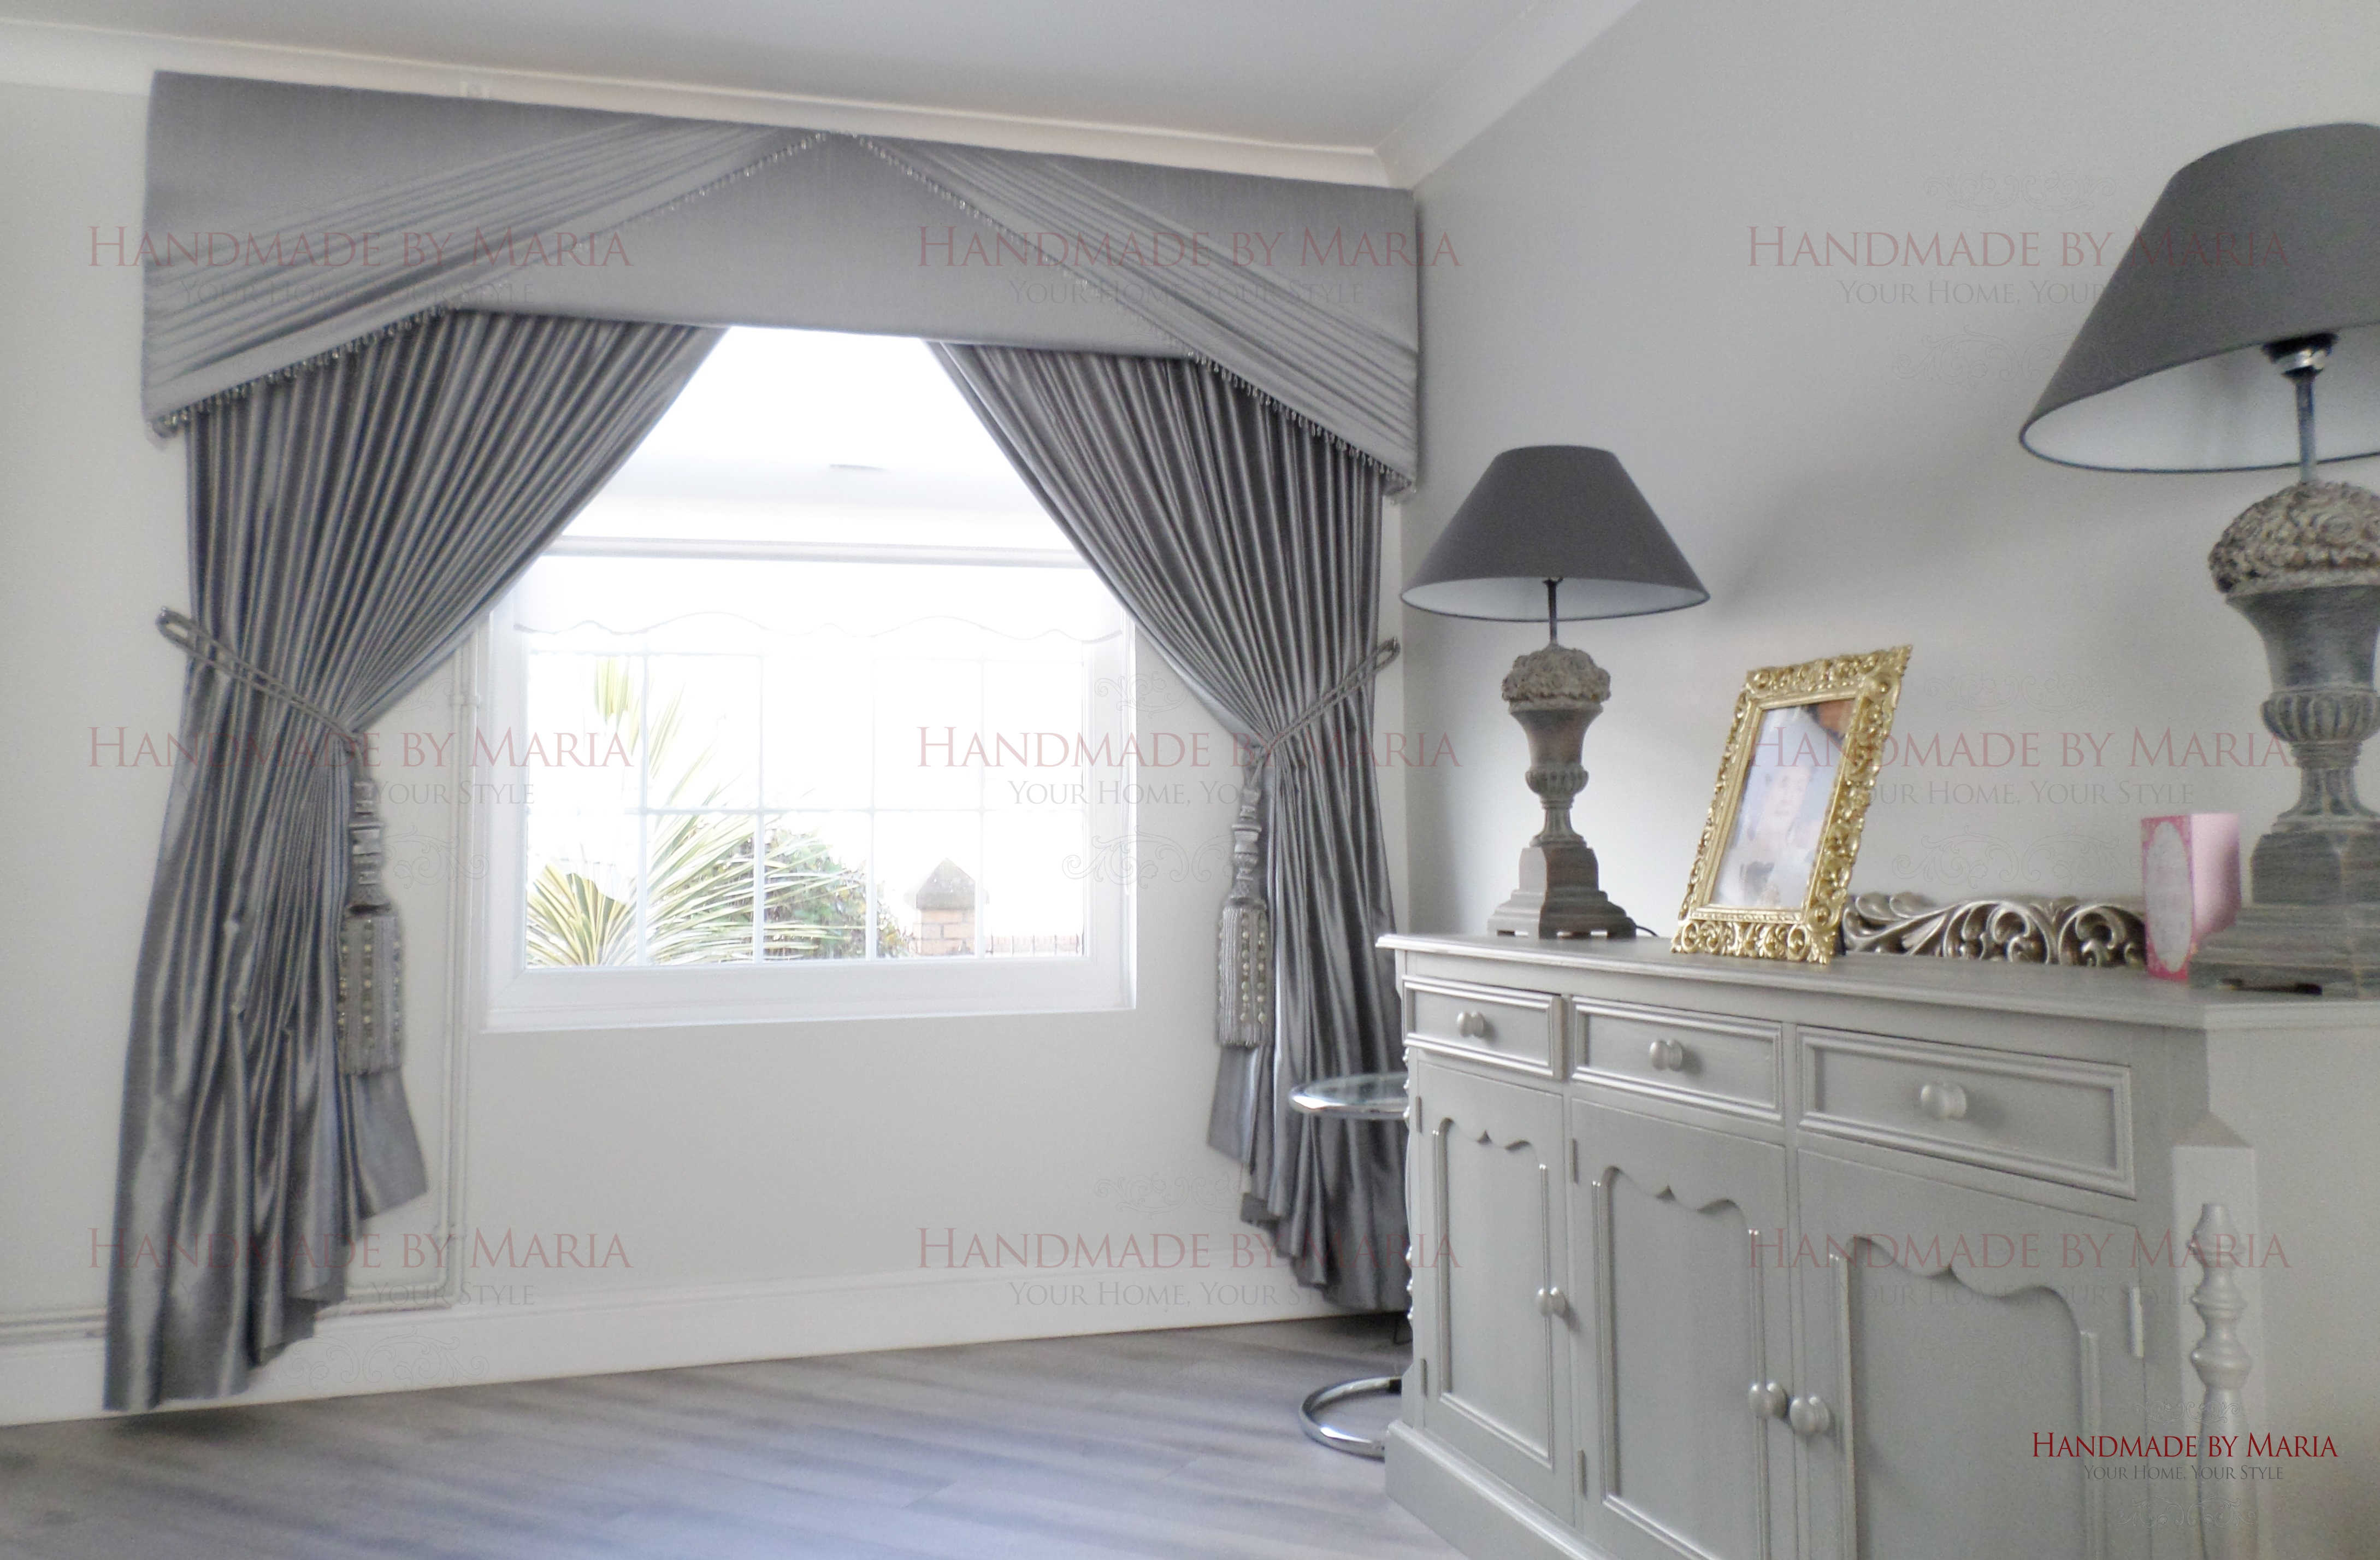 Pelmets Amp Curtains Made To Measure Handmade By Maia